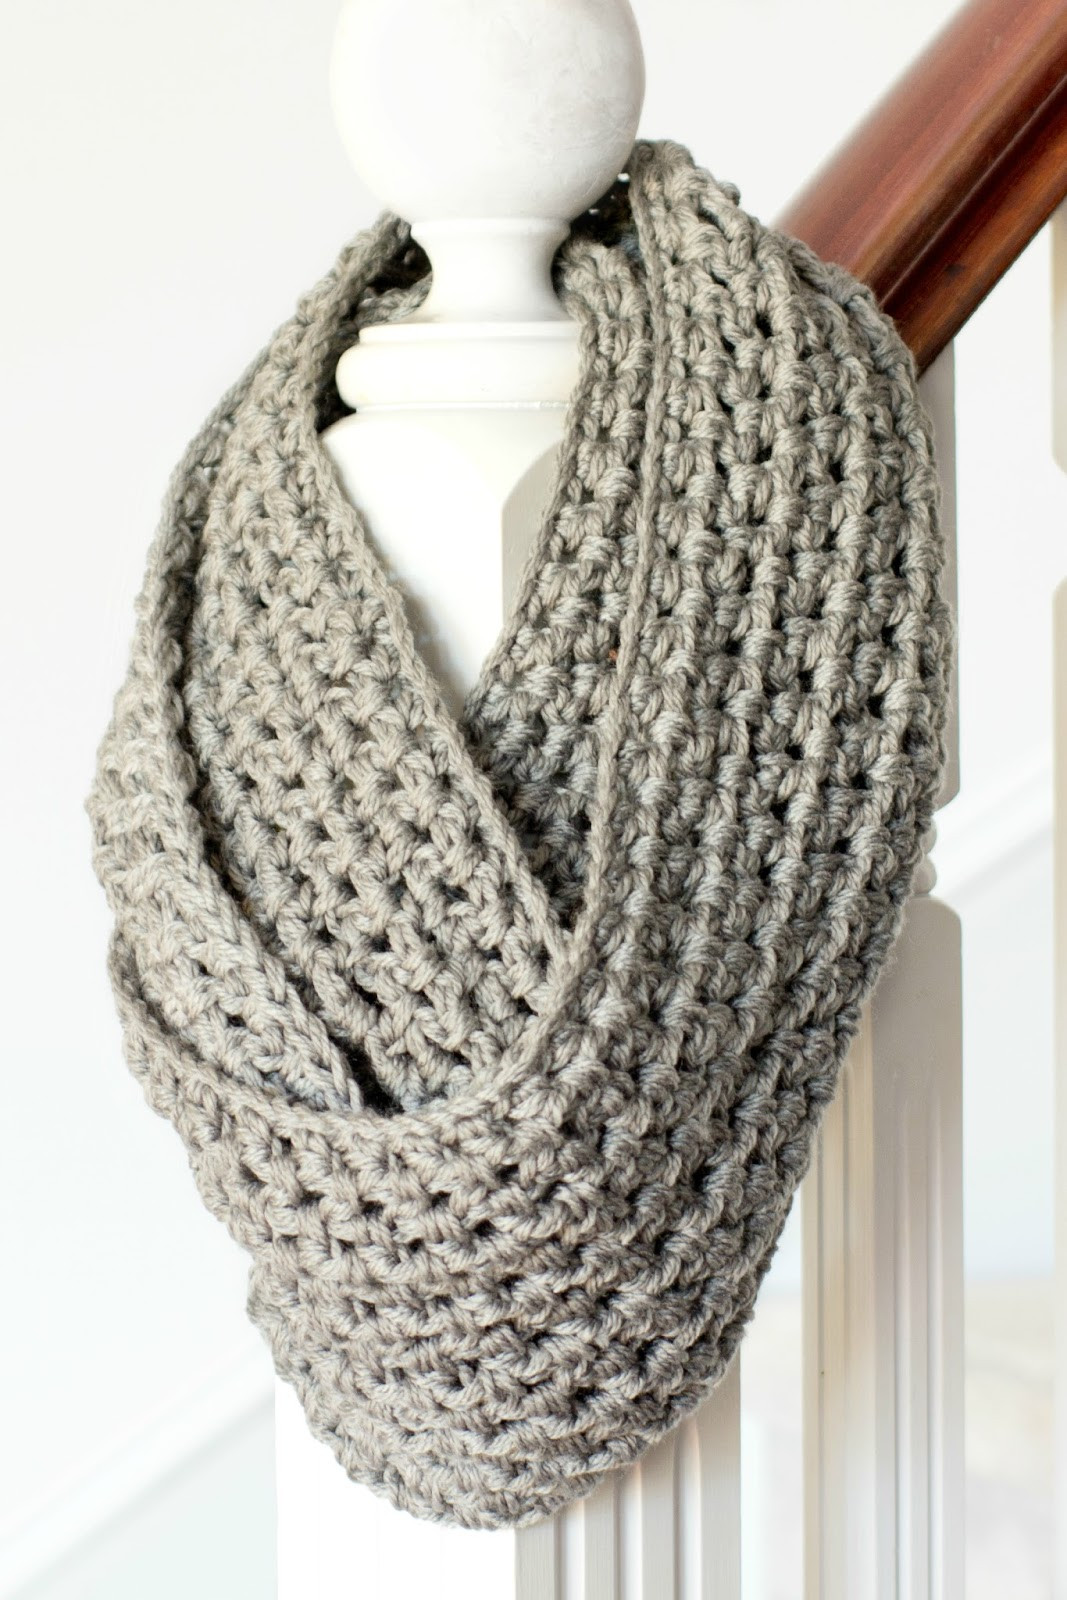 Crochet Thread Patterns Awesome Chunky Yarn Crochet Scarf Pattern Of Superb 47 Pics Crochet Thread Patterns